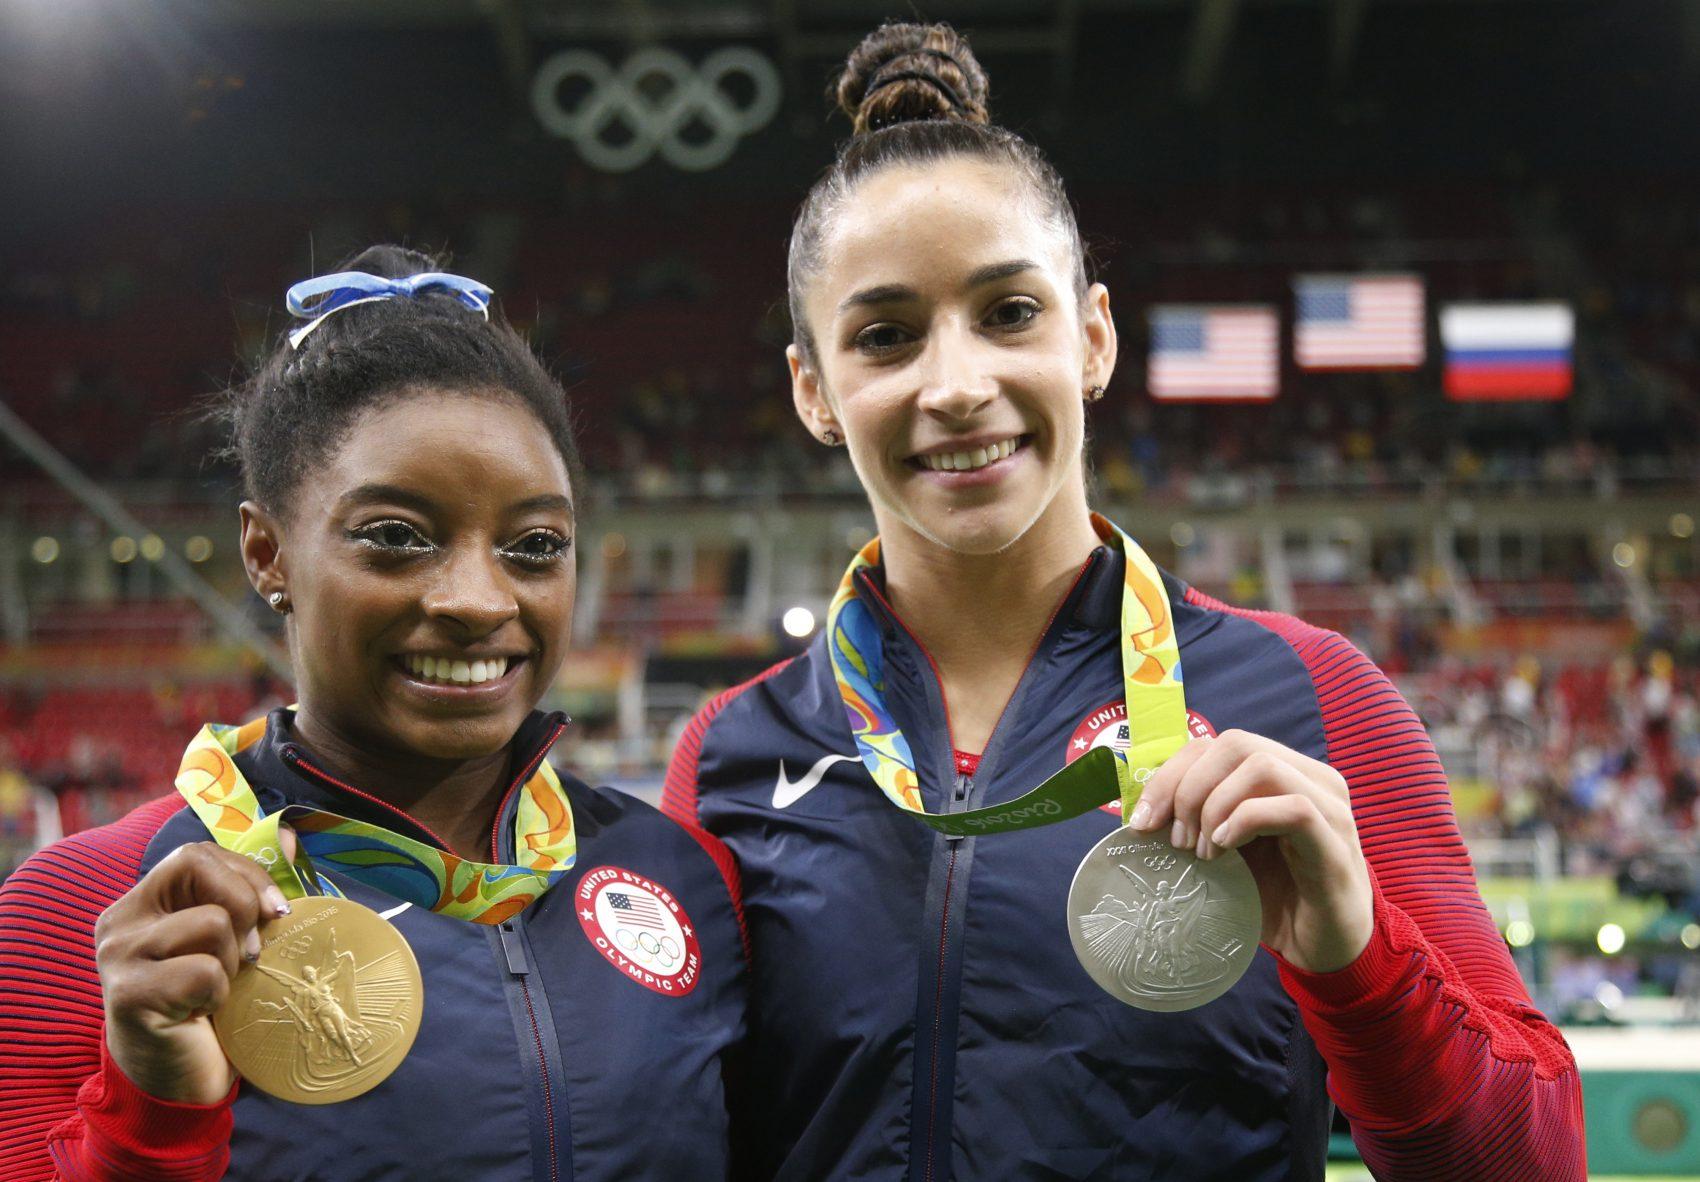 685b826e7 Aly Raisman (right) stands with teammate Simone Biles (left) after they won